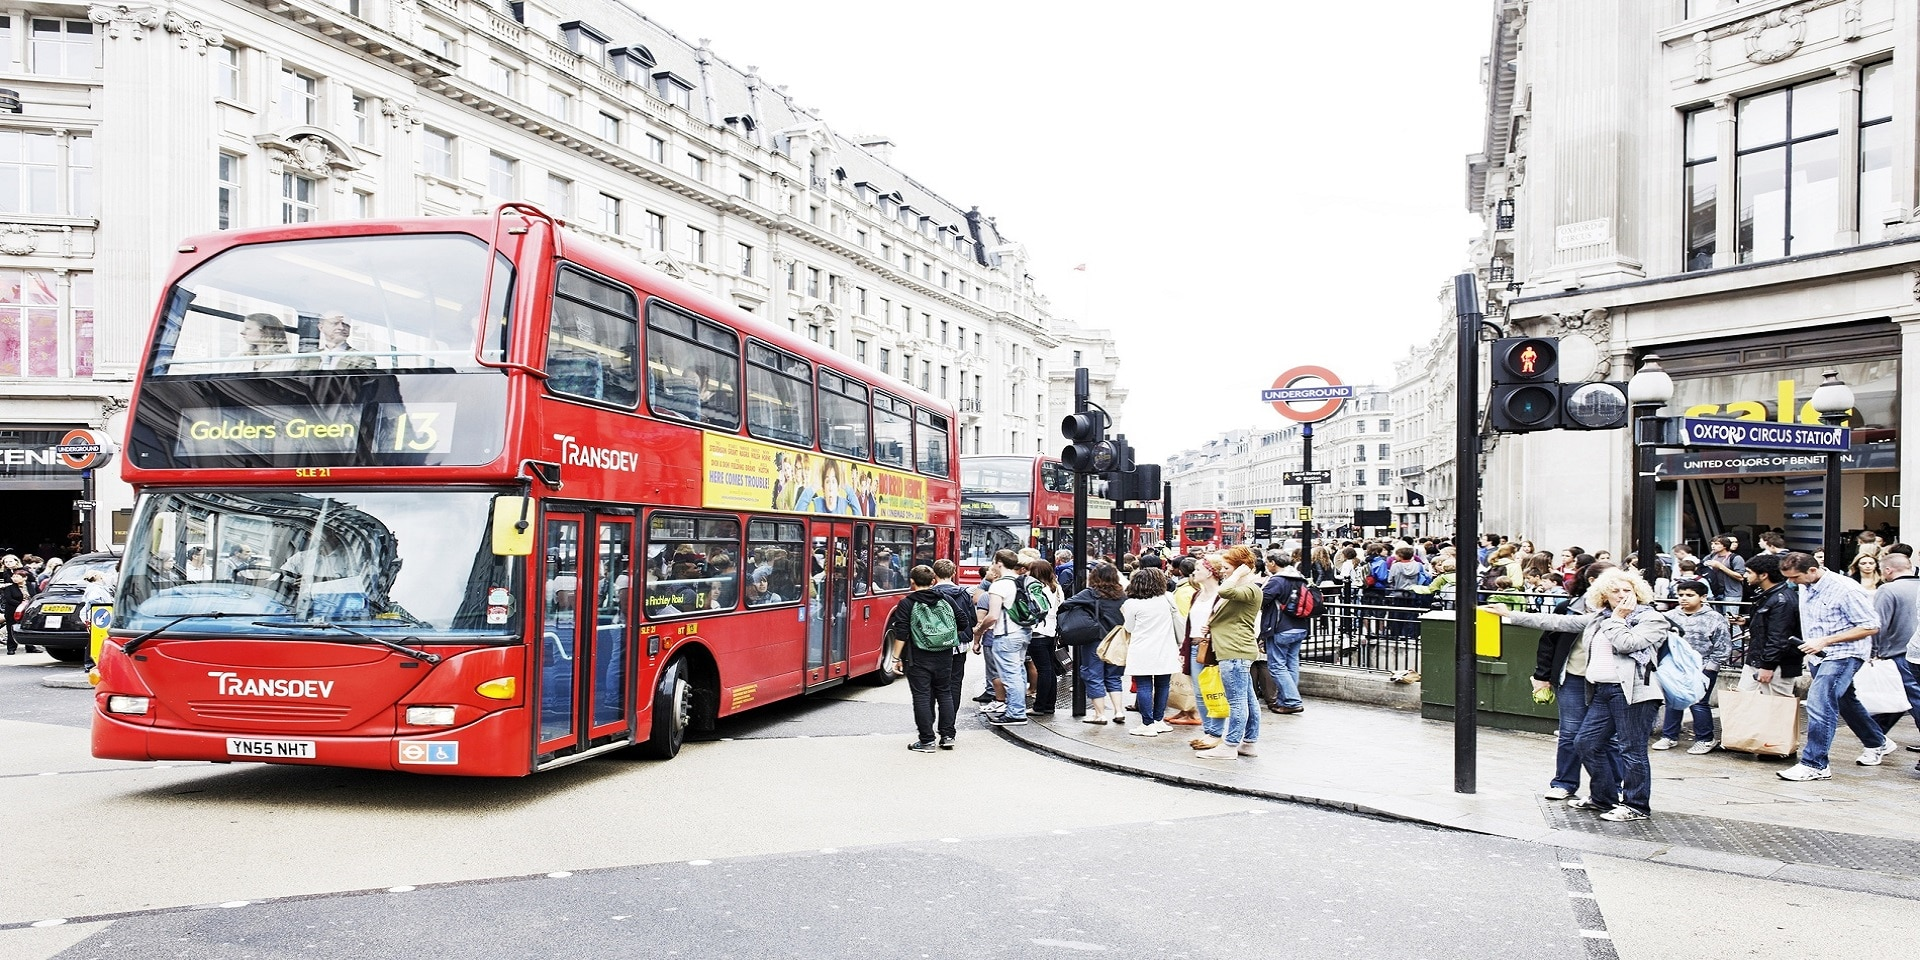 A classic red London bus at Oxford Circus.